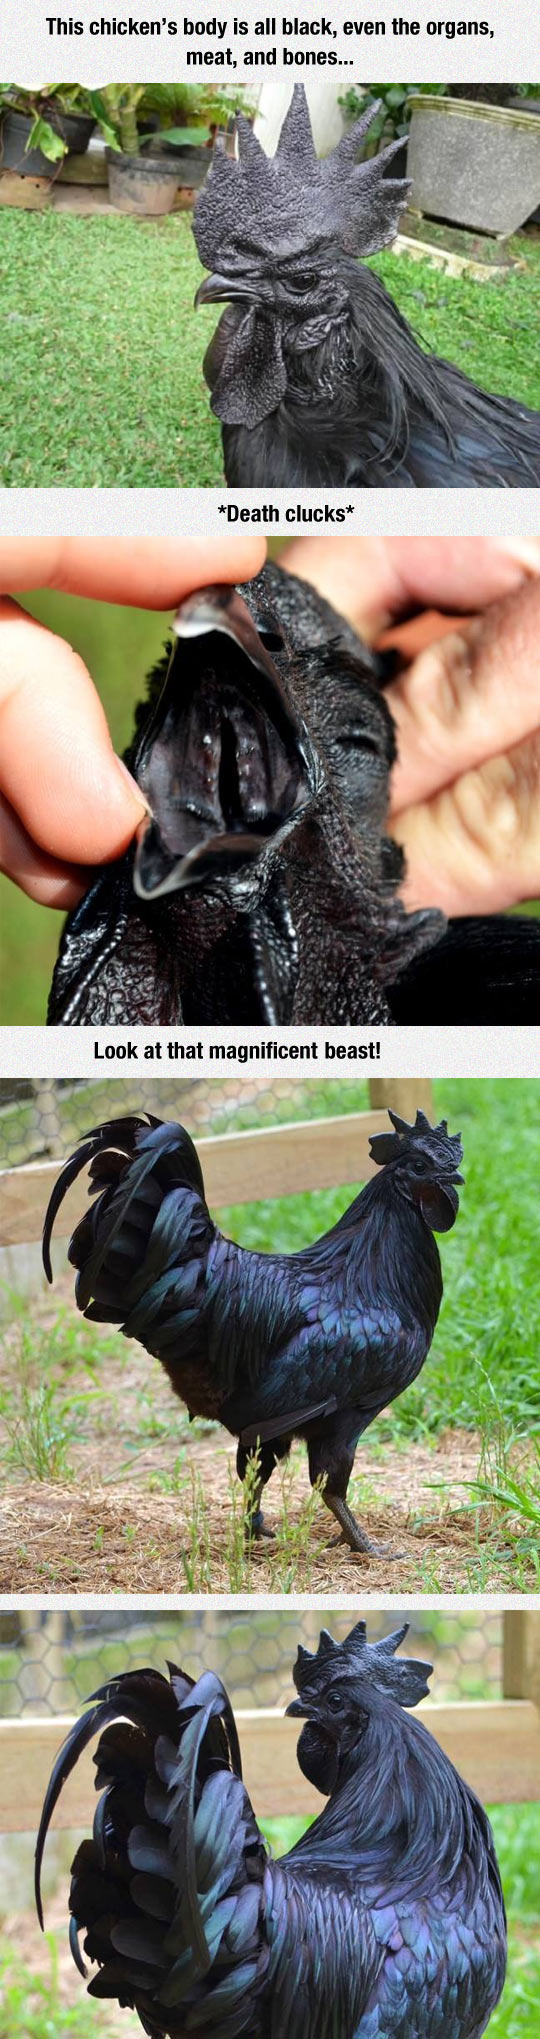 This Is The Kadaknath, The Most Metal Chicken Ever